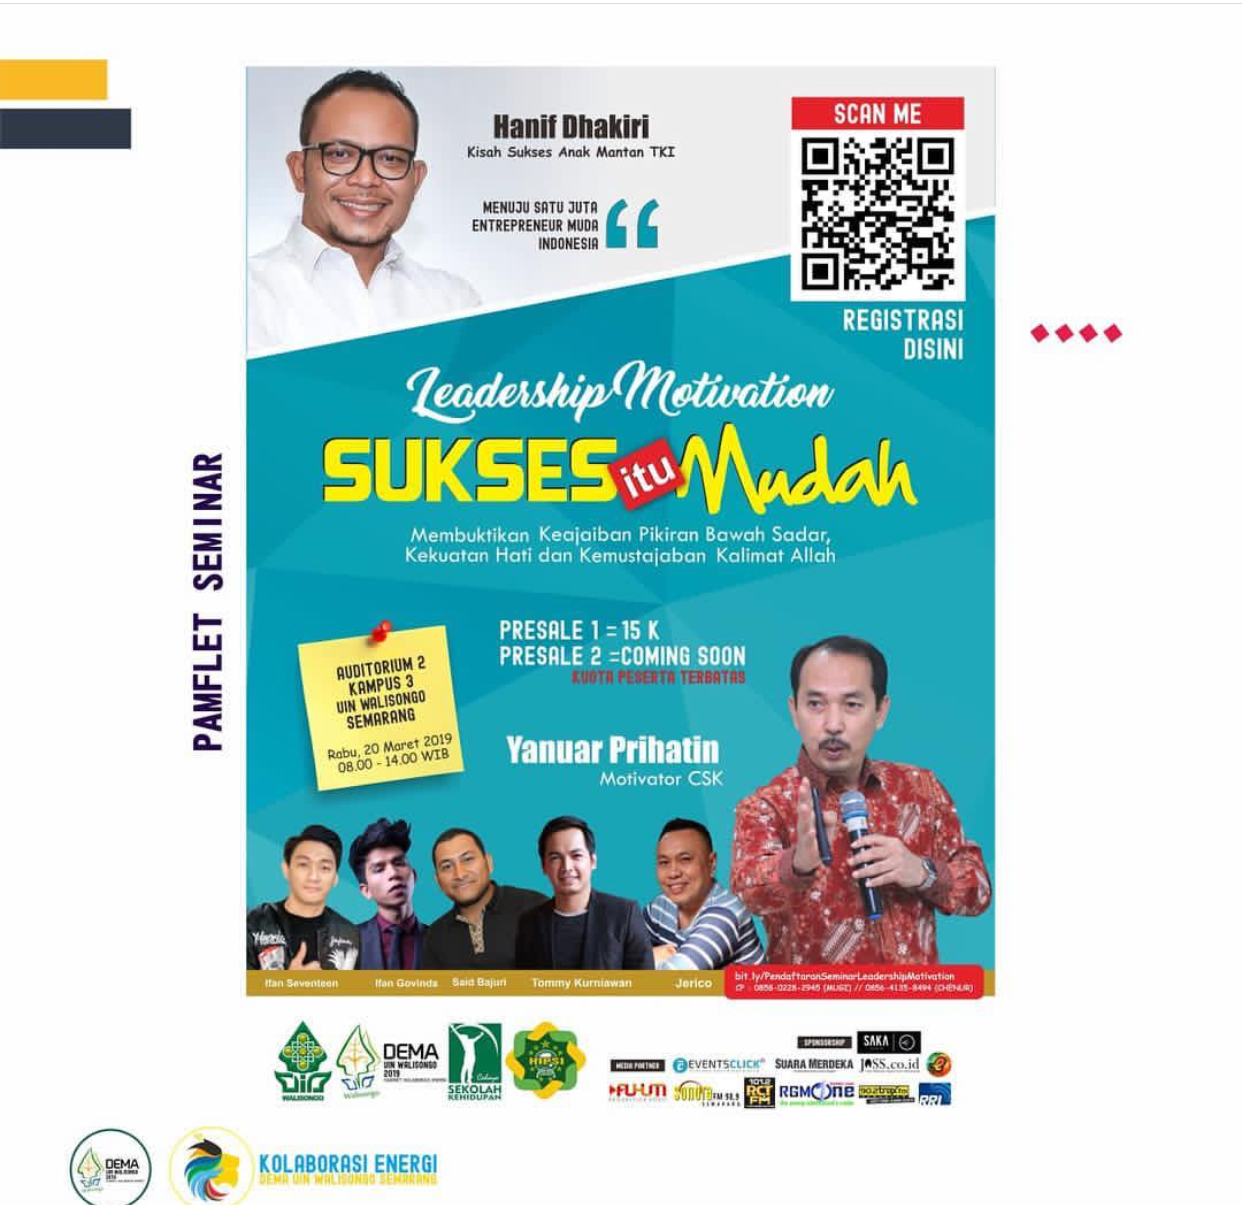 Event Semarang - Seminar Leadership Motivation Uin Walisongo 2019